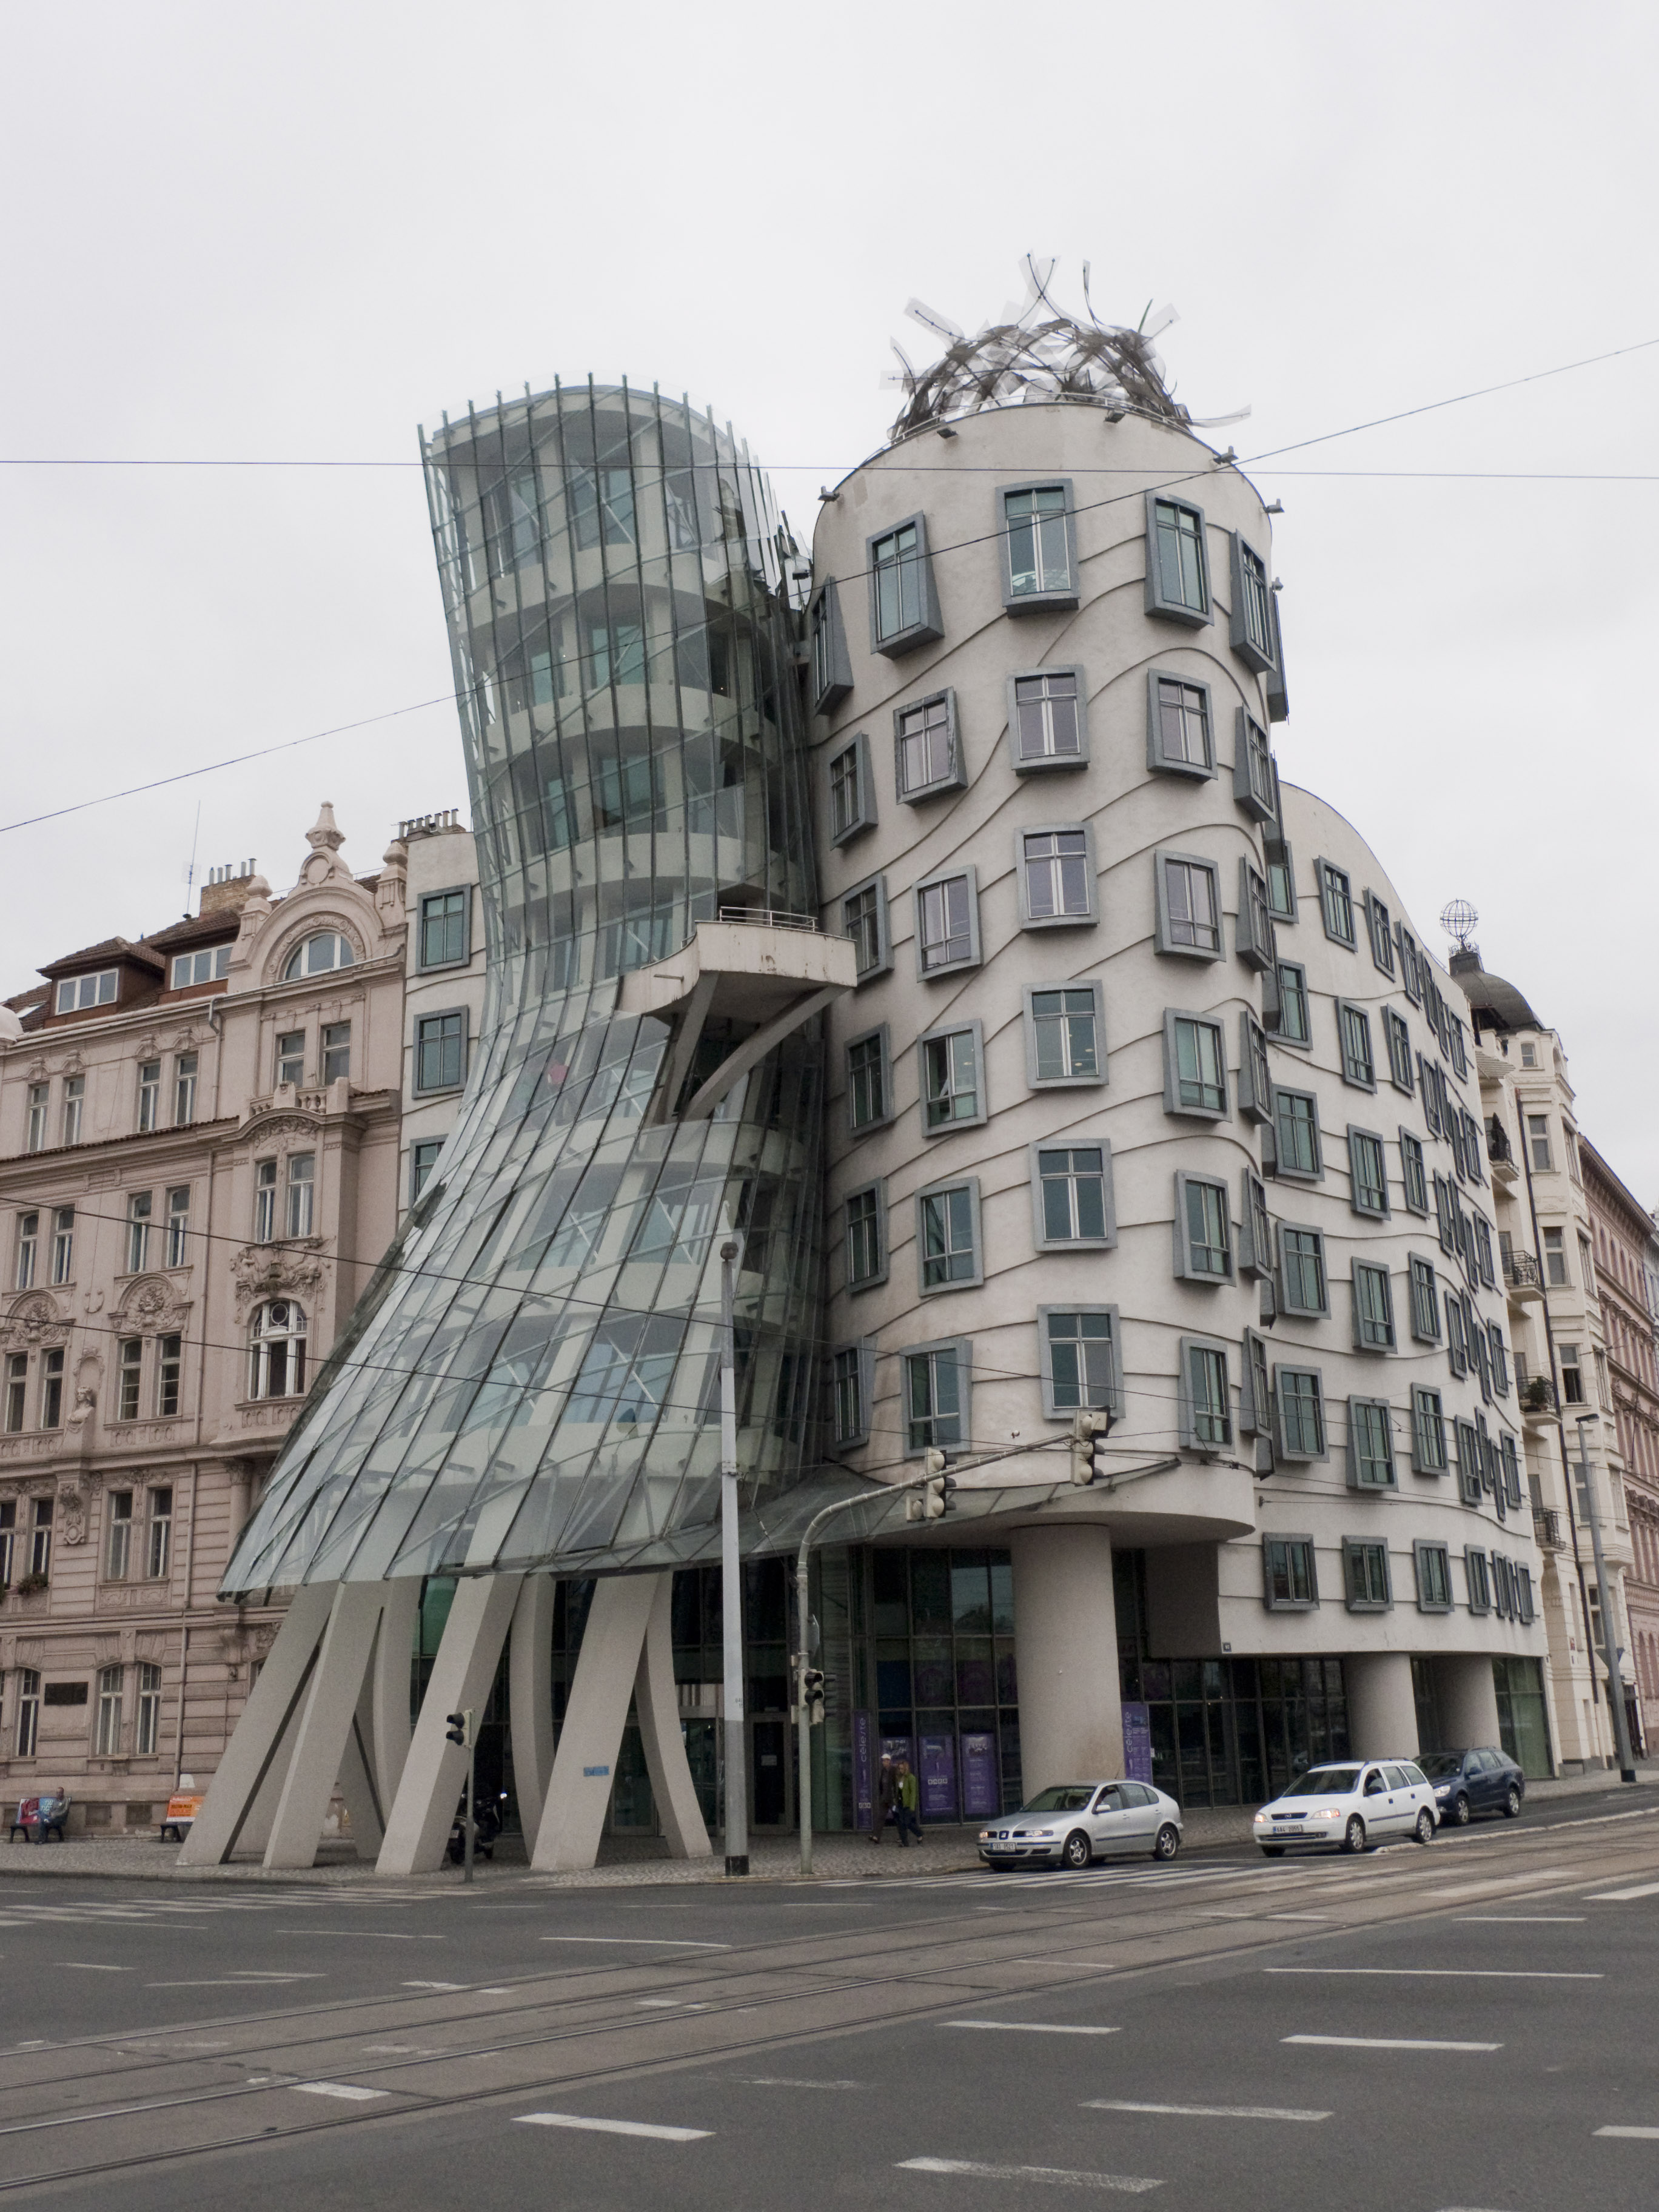 Archikey.com | Buildings | Dancing House